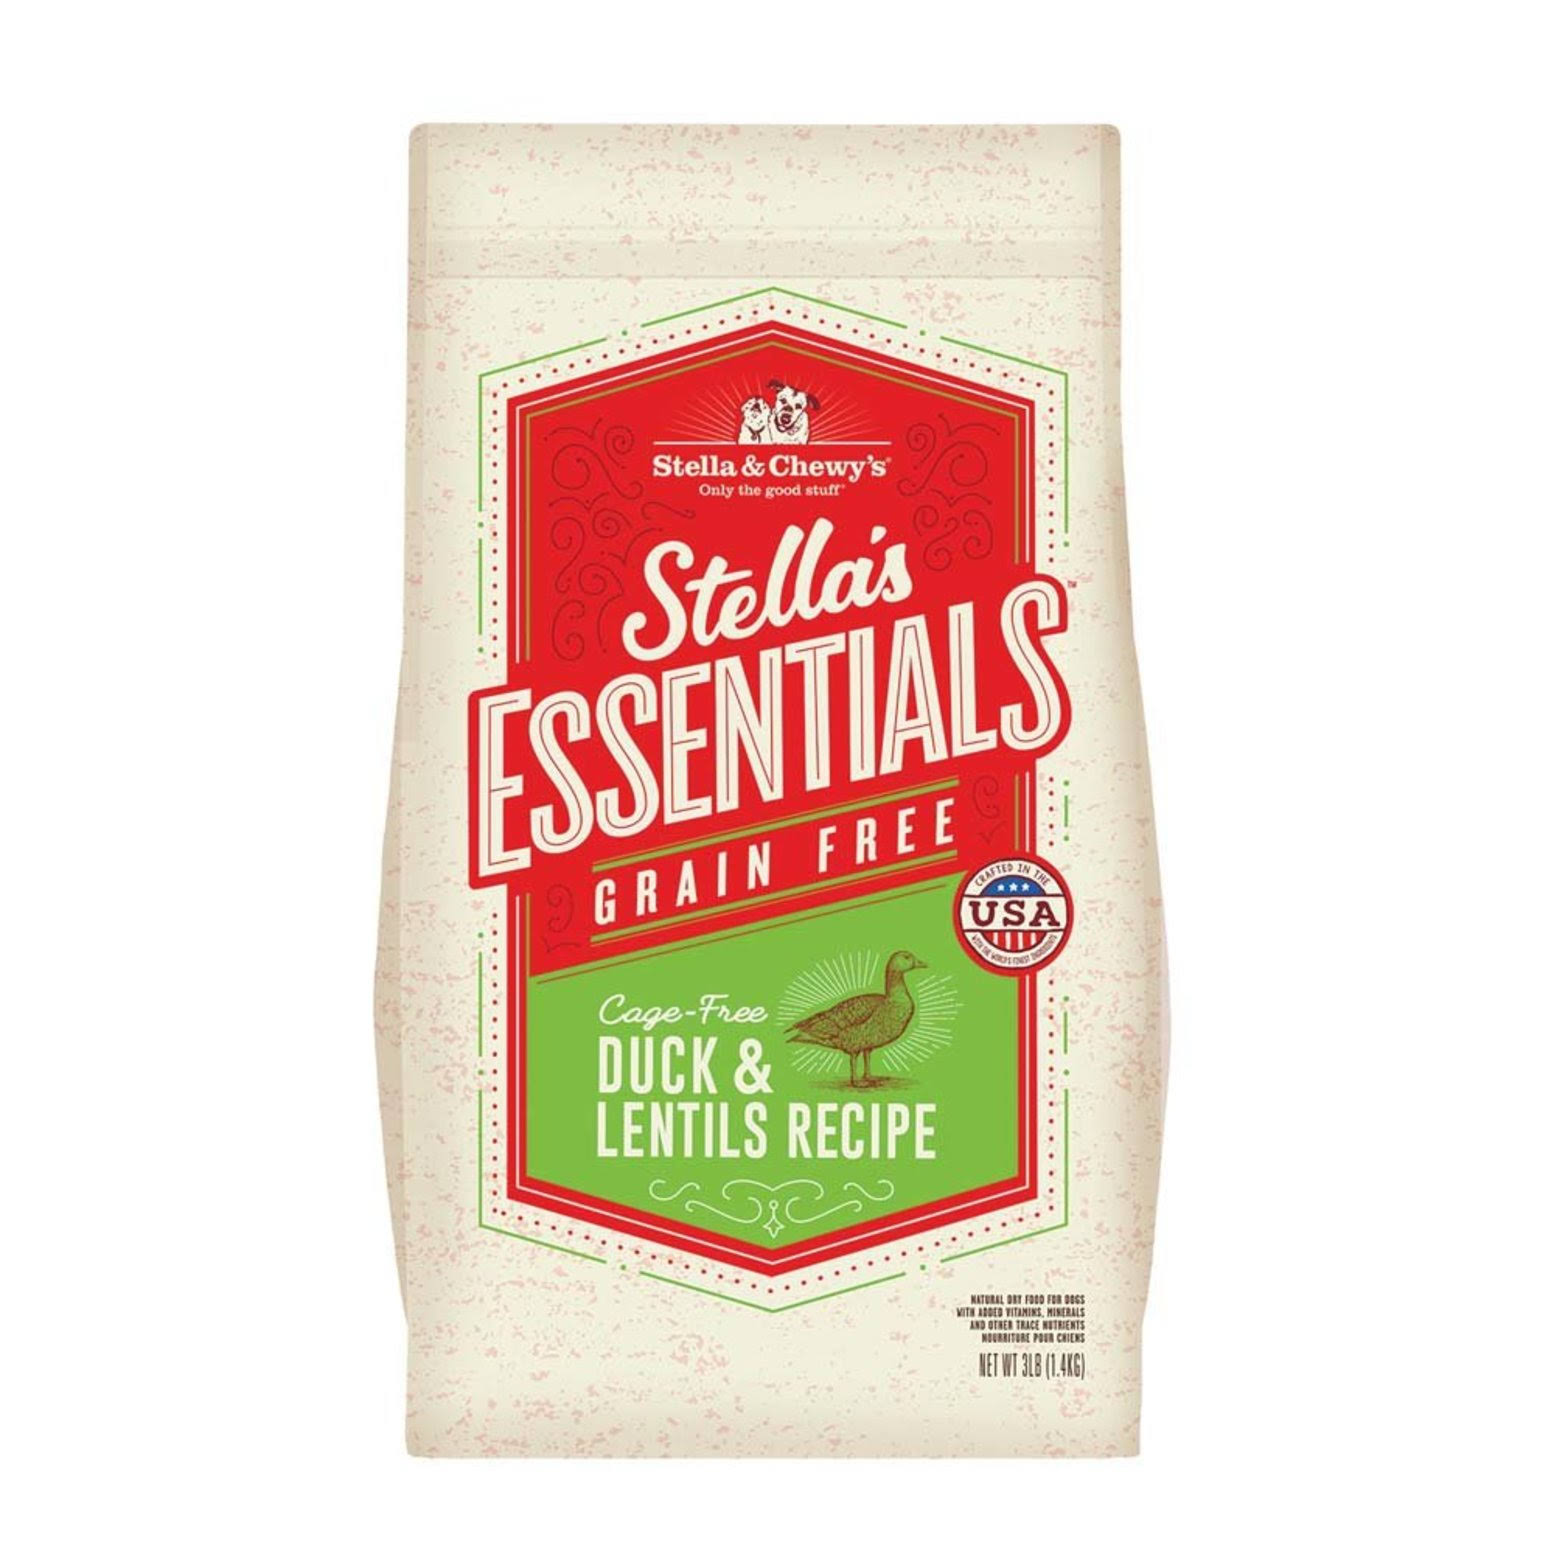 Stella & Chewy's Essentials Grain Free Cage-Free Duck & Lentils Dog Food 25-lb